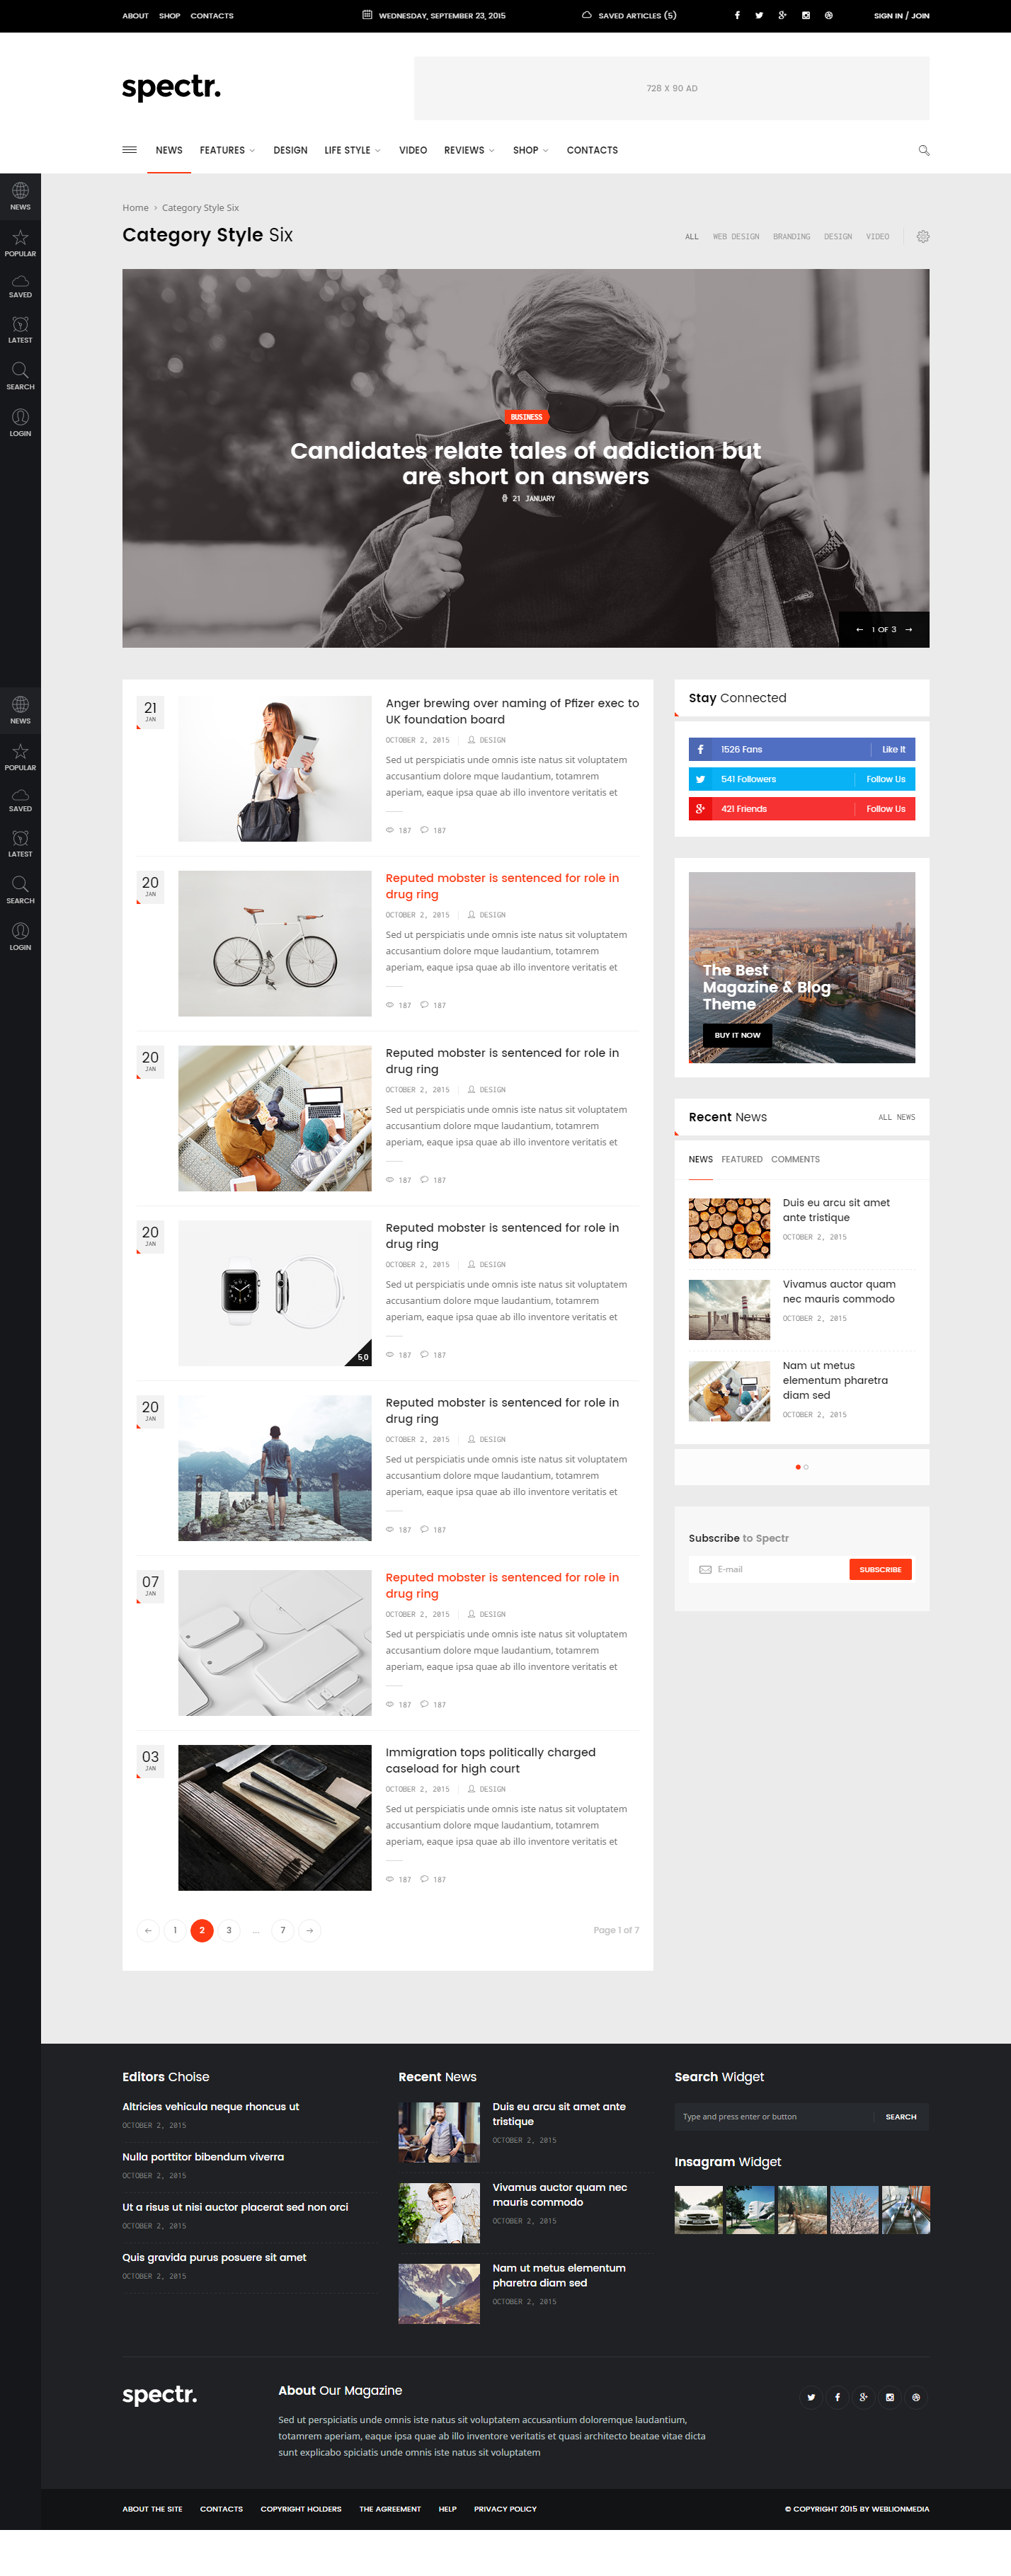 spectr responsive news and magazine template by weblionmedia